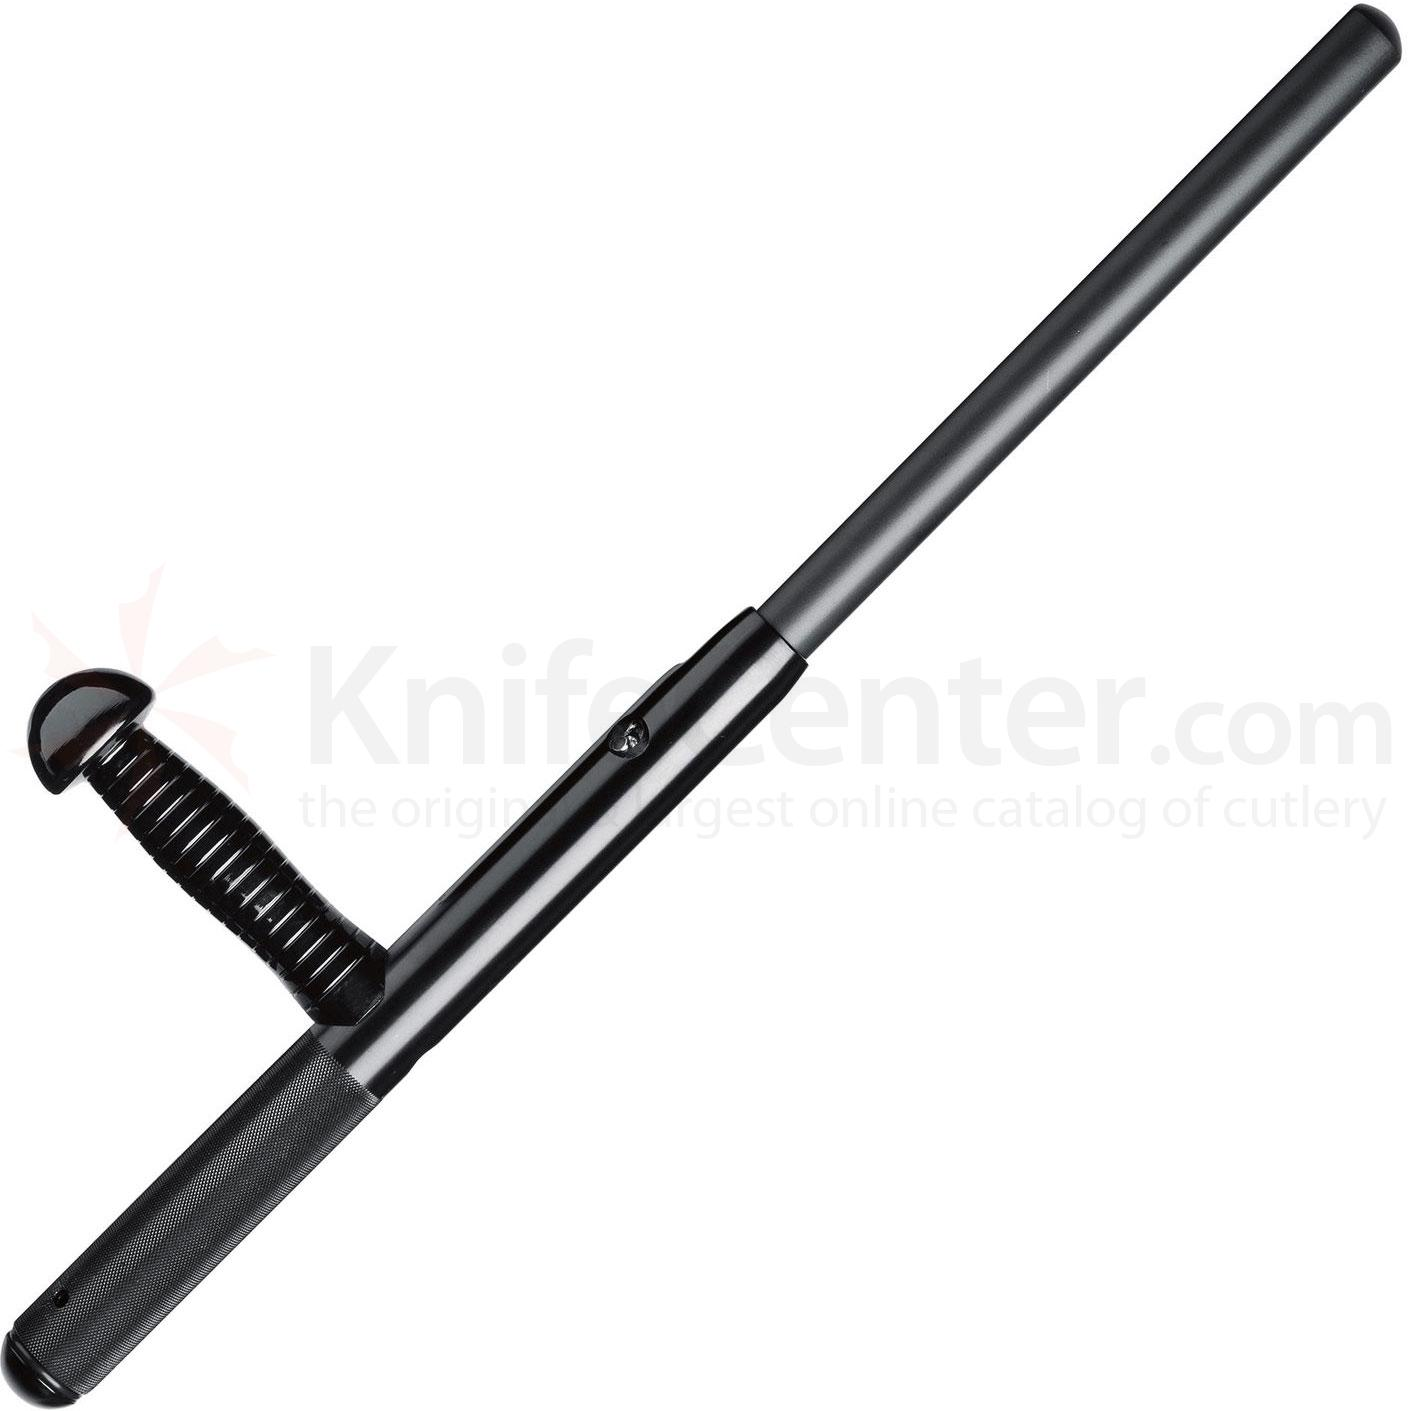 Monadnock PR-24 Expandable Side-Handle 24 inch Baton, Knurled Grip, Black